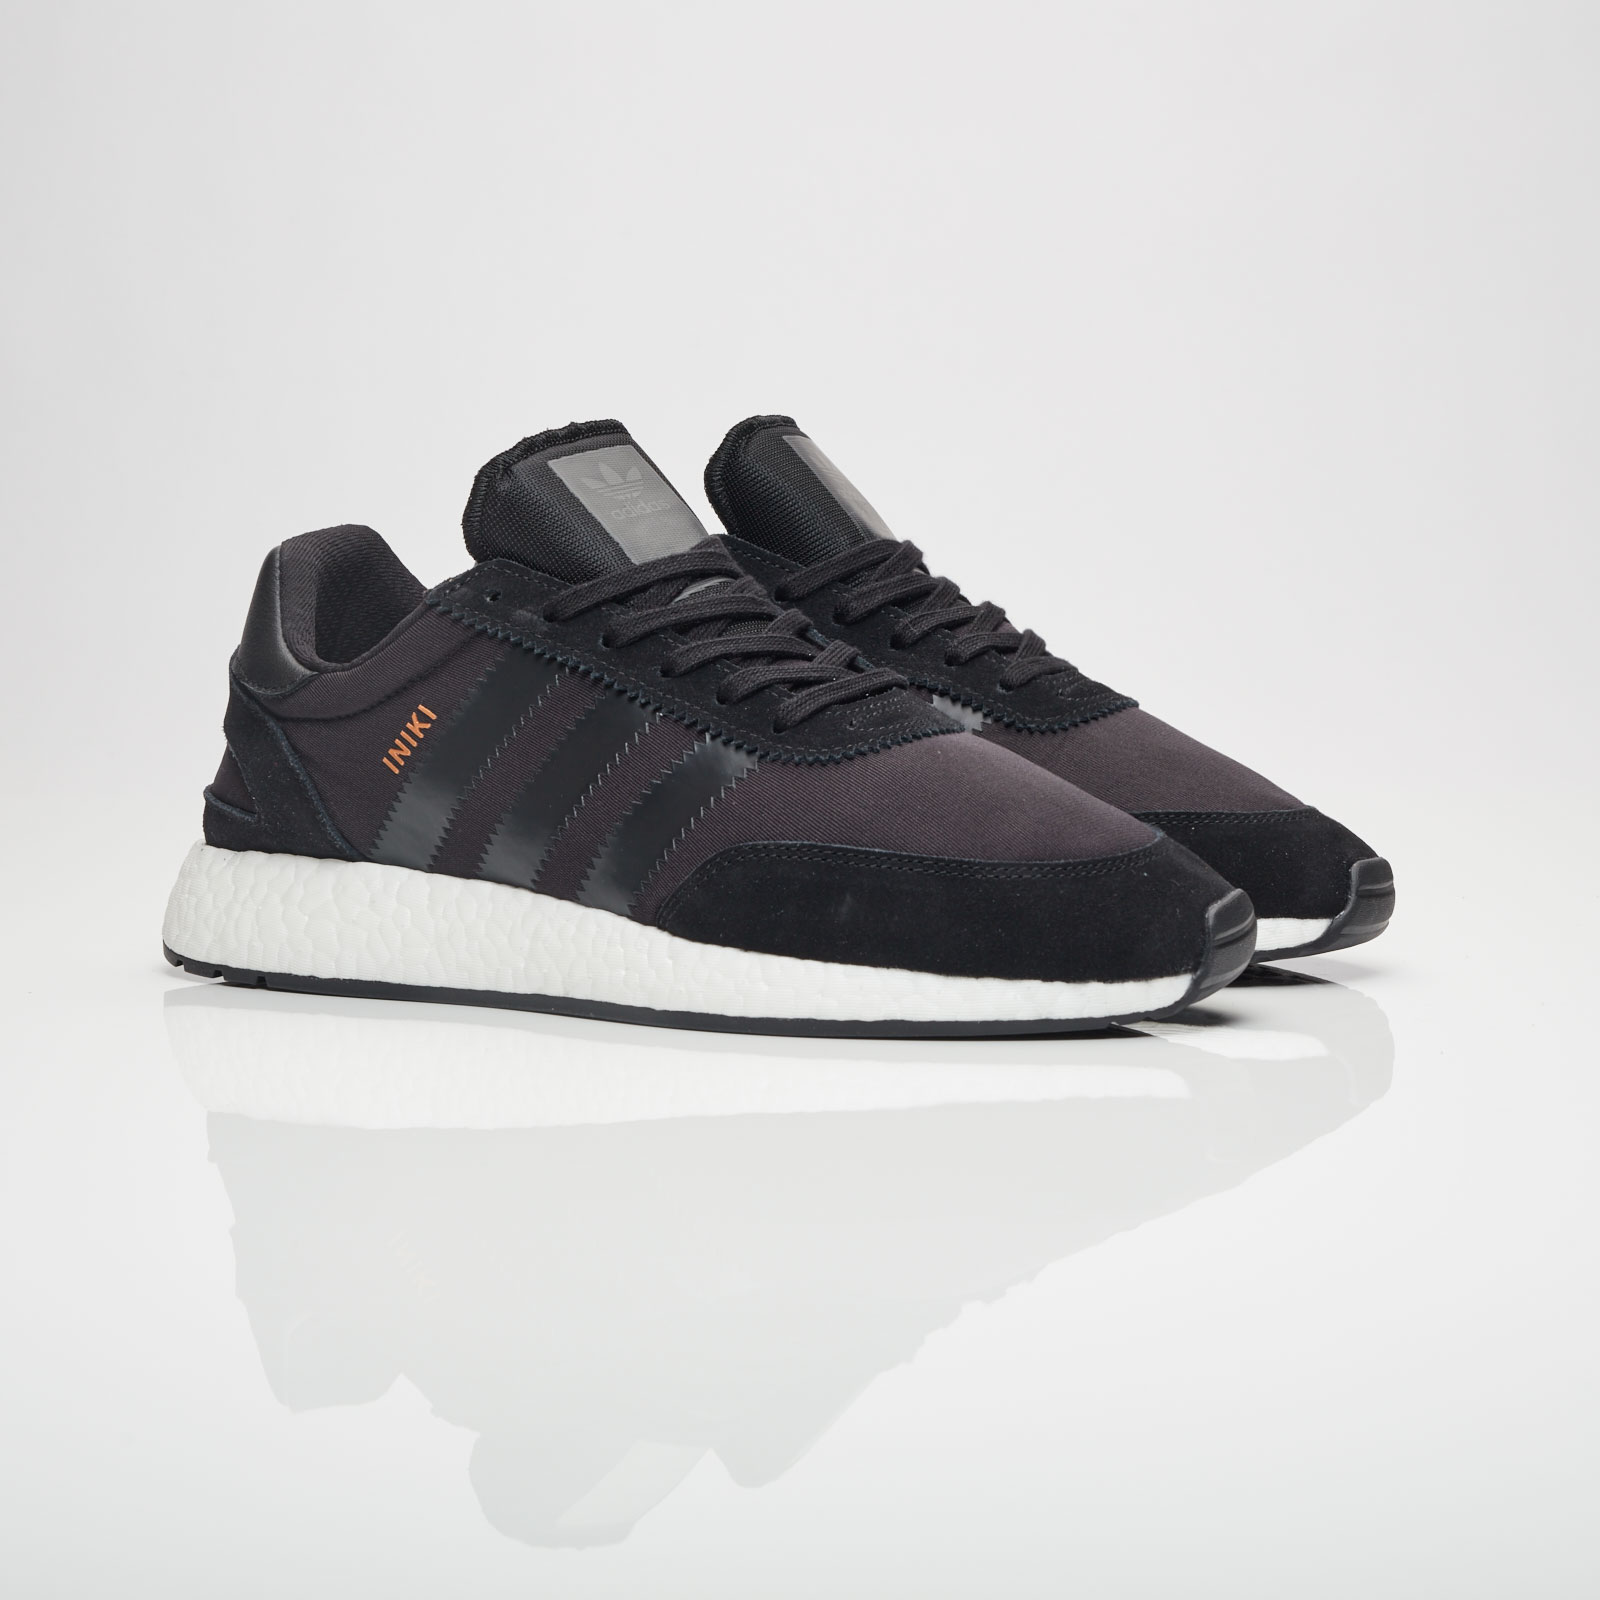 adidas Iniki Runner Boost Sneakers In BY9730